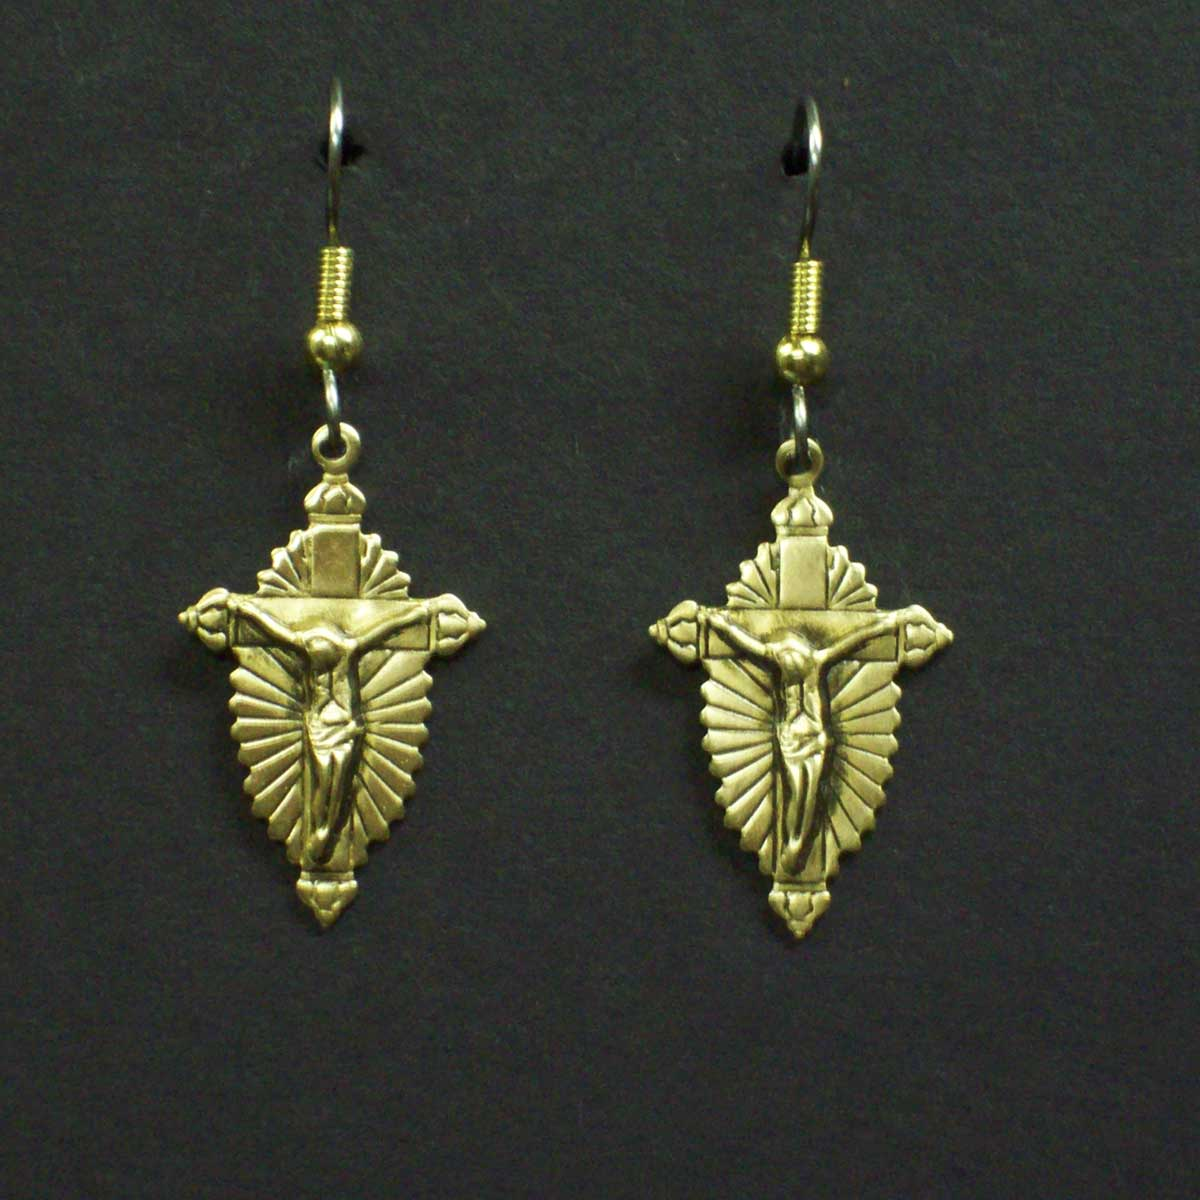 Hightlighted Crucifix Earrings